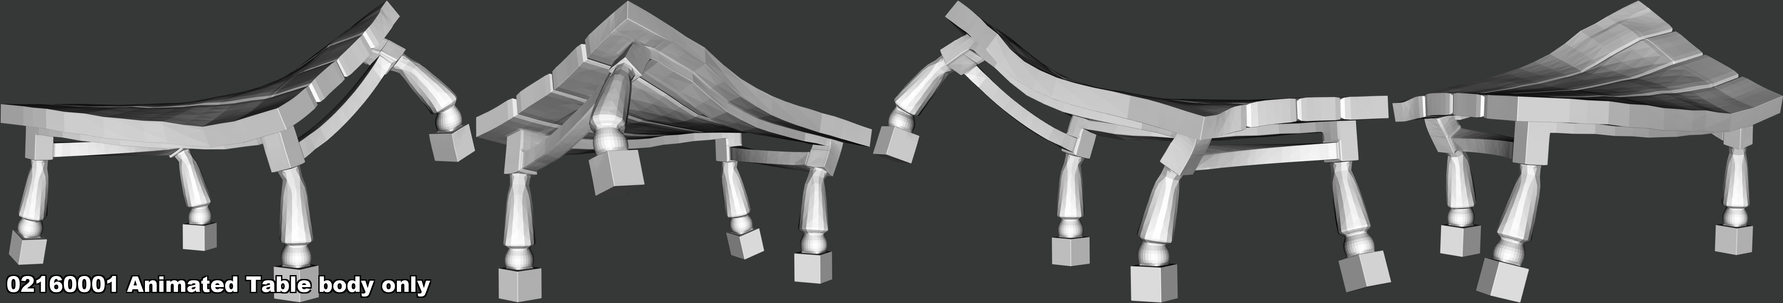 02160001 Animated Table body only.png